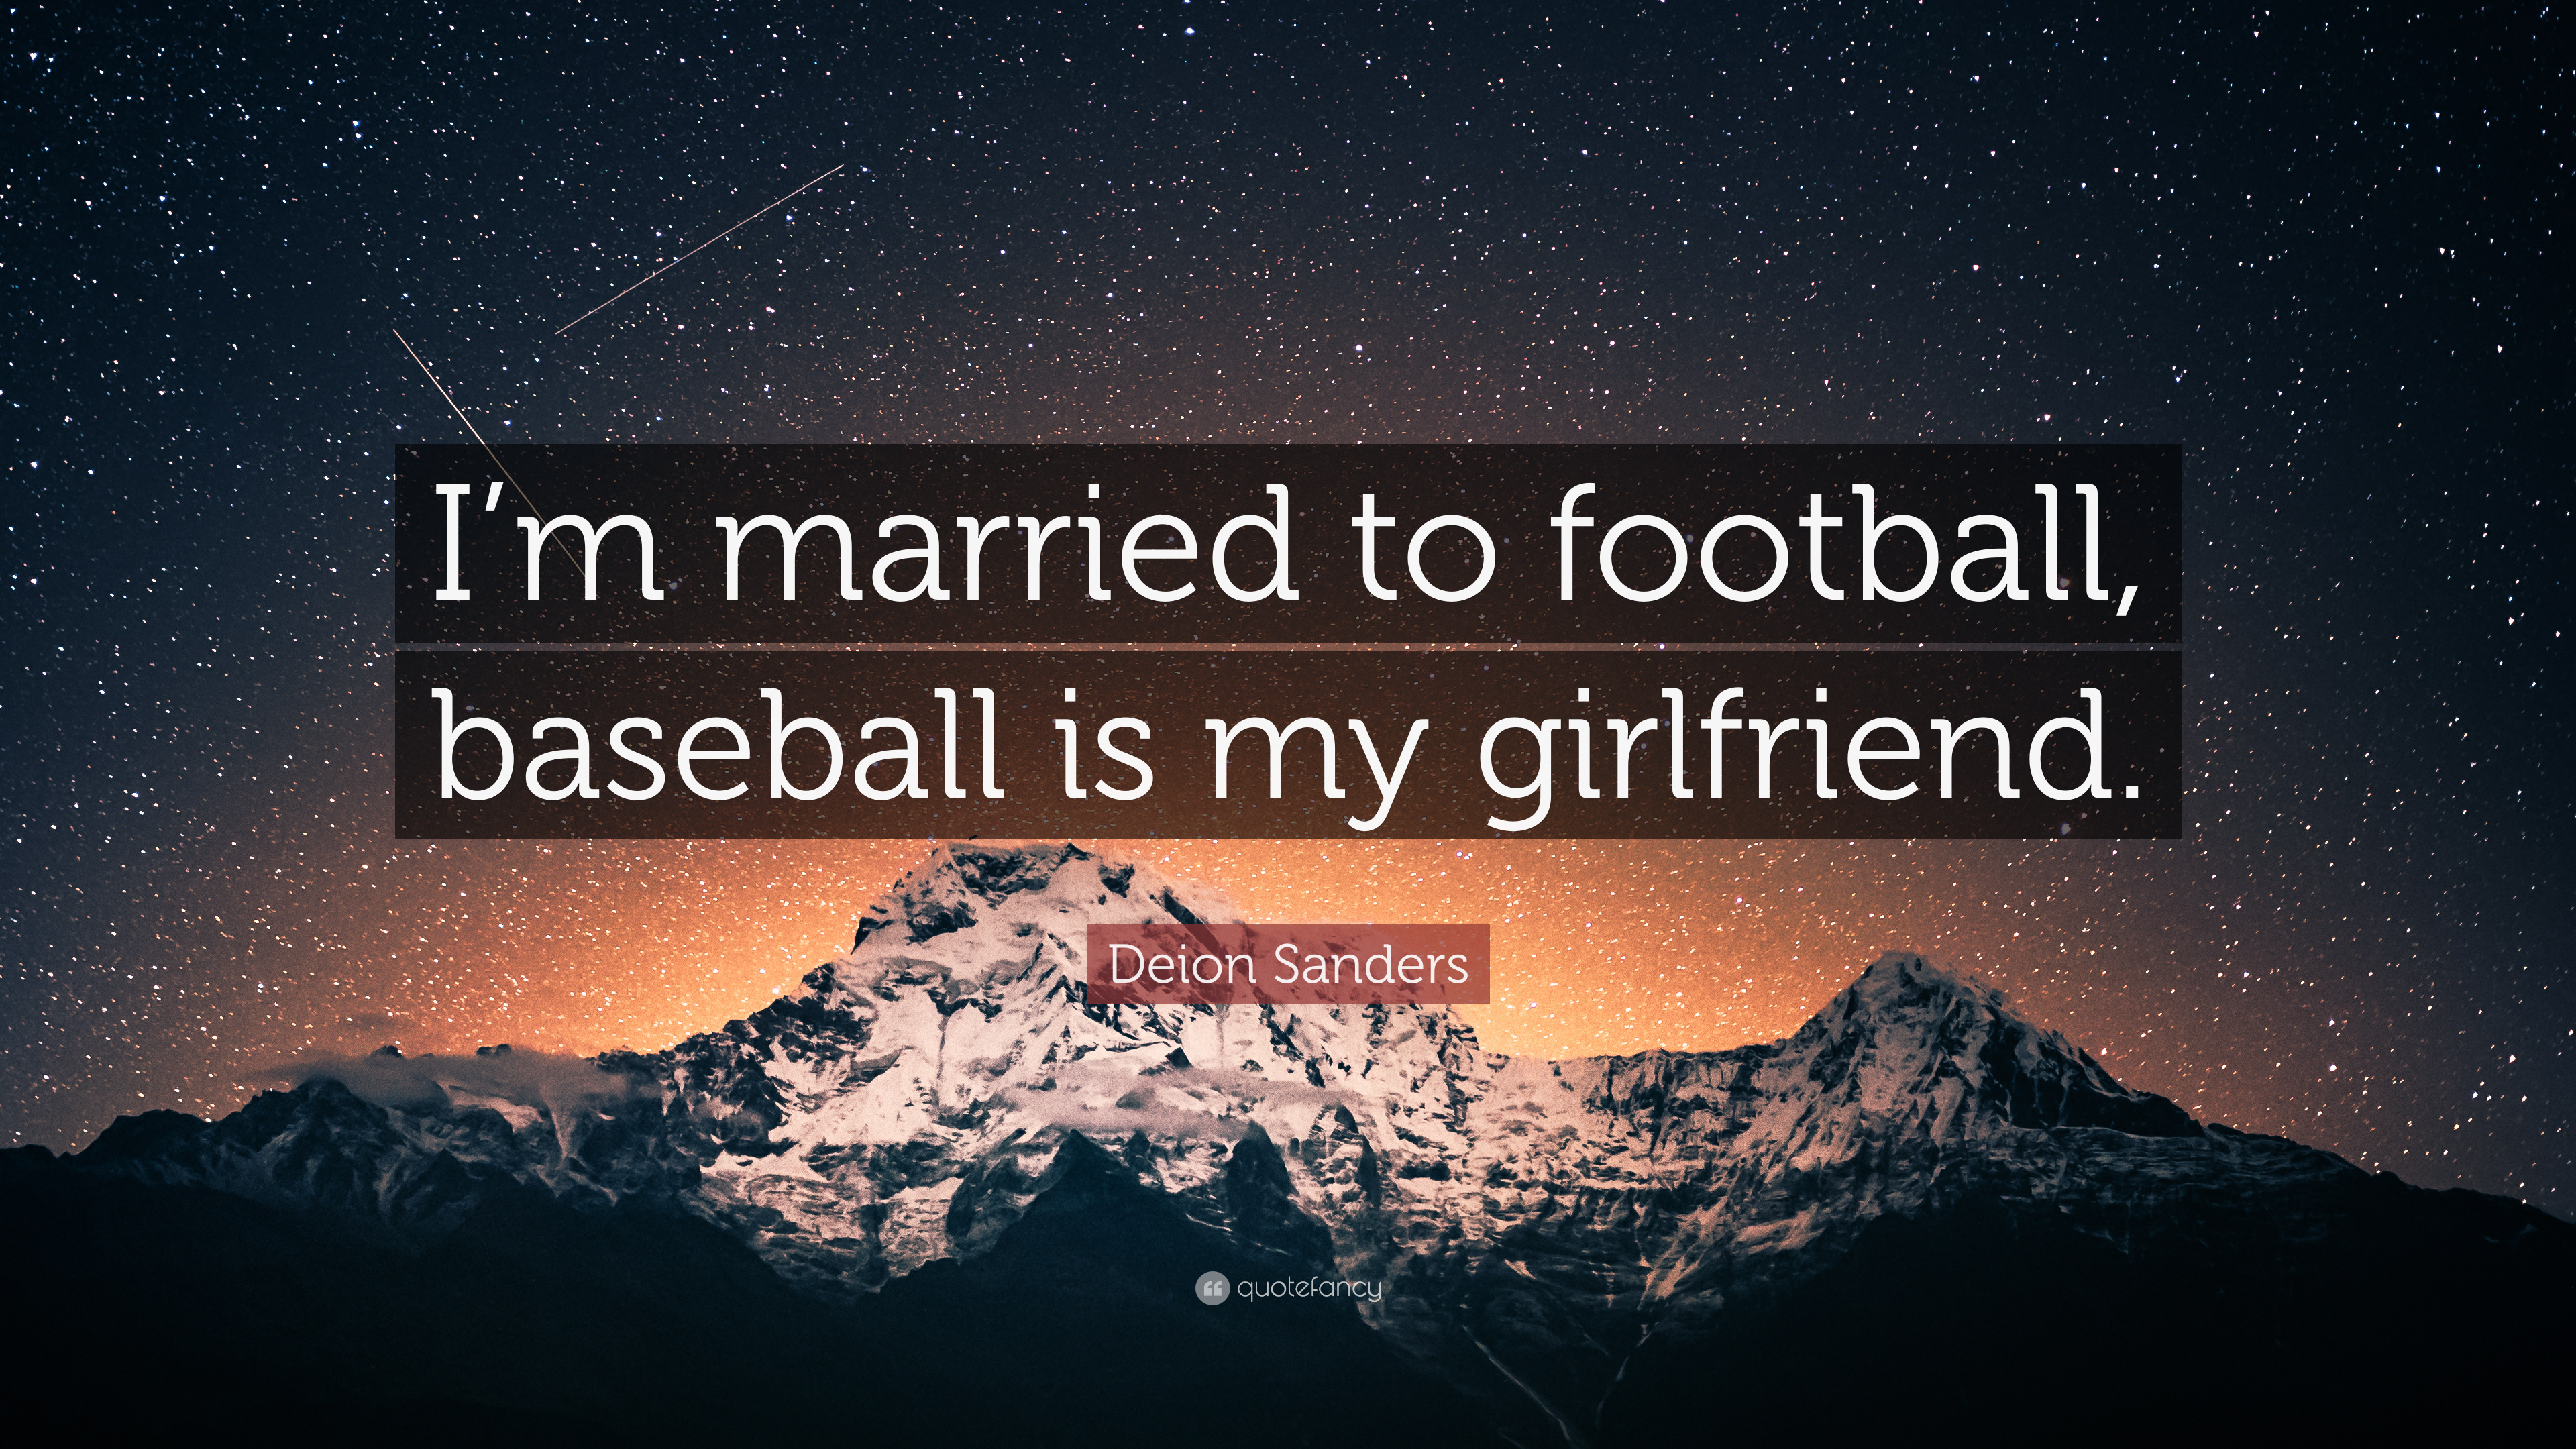 Best Wallpaper Football Baseball - 3021552-Deion-Sanders-Quote-I-m-married-to-football-baseball-is-my  Photograph_801392 .jpg